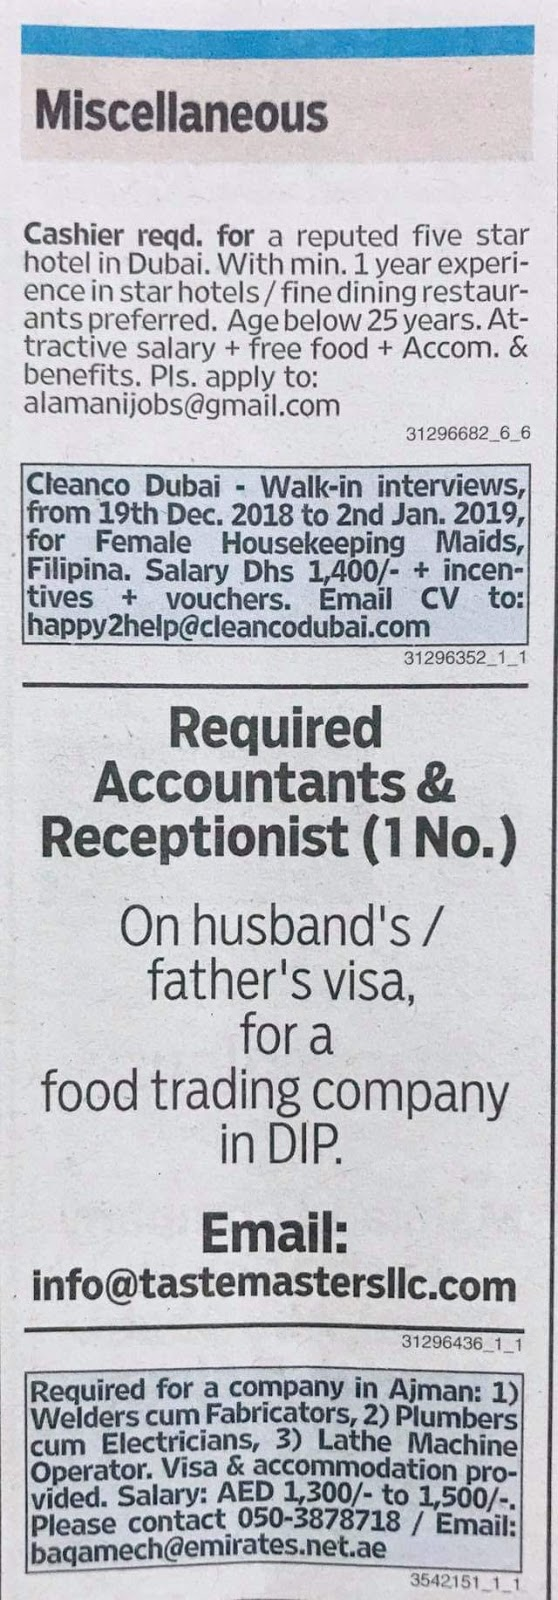 Required Receptionist,Accountants,Cashier for UAE Local